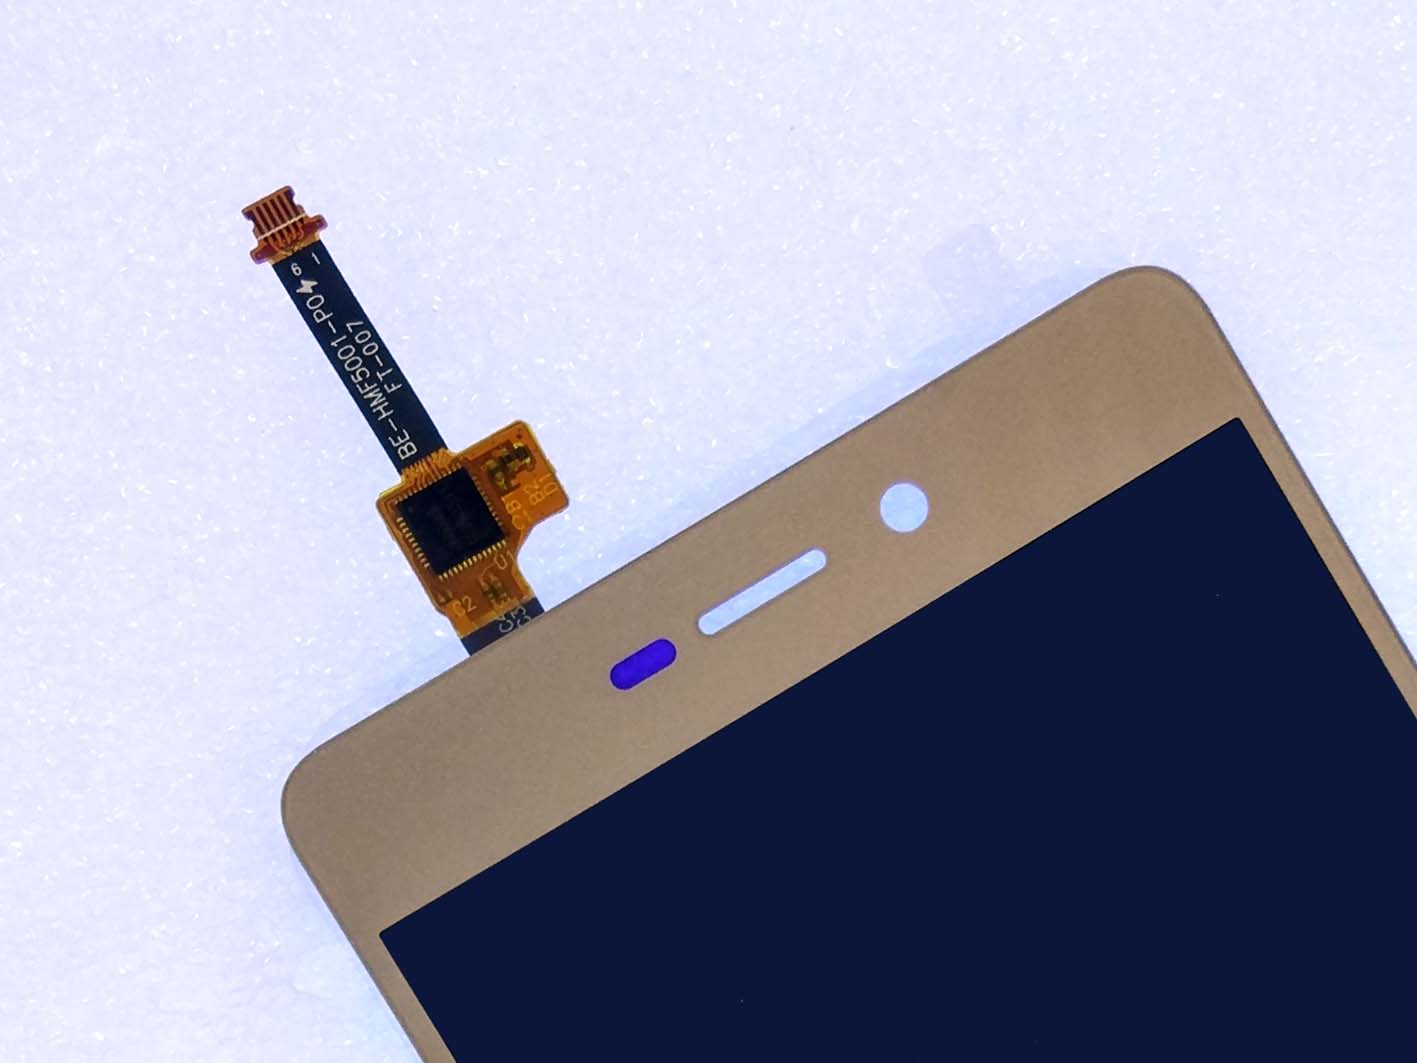 Original LCD + OEM Touch Screen Digitizer for Redmi 3&Redmi 3 Pro-Black & white & gold